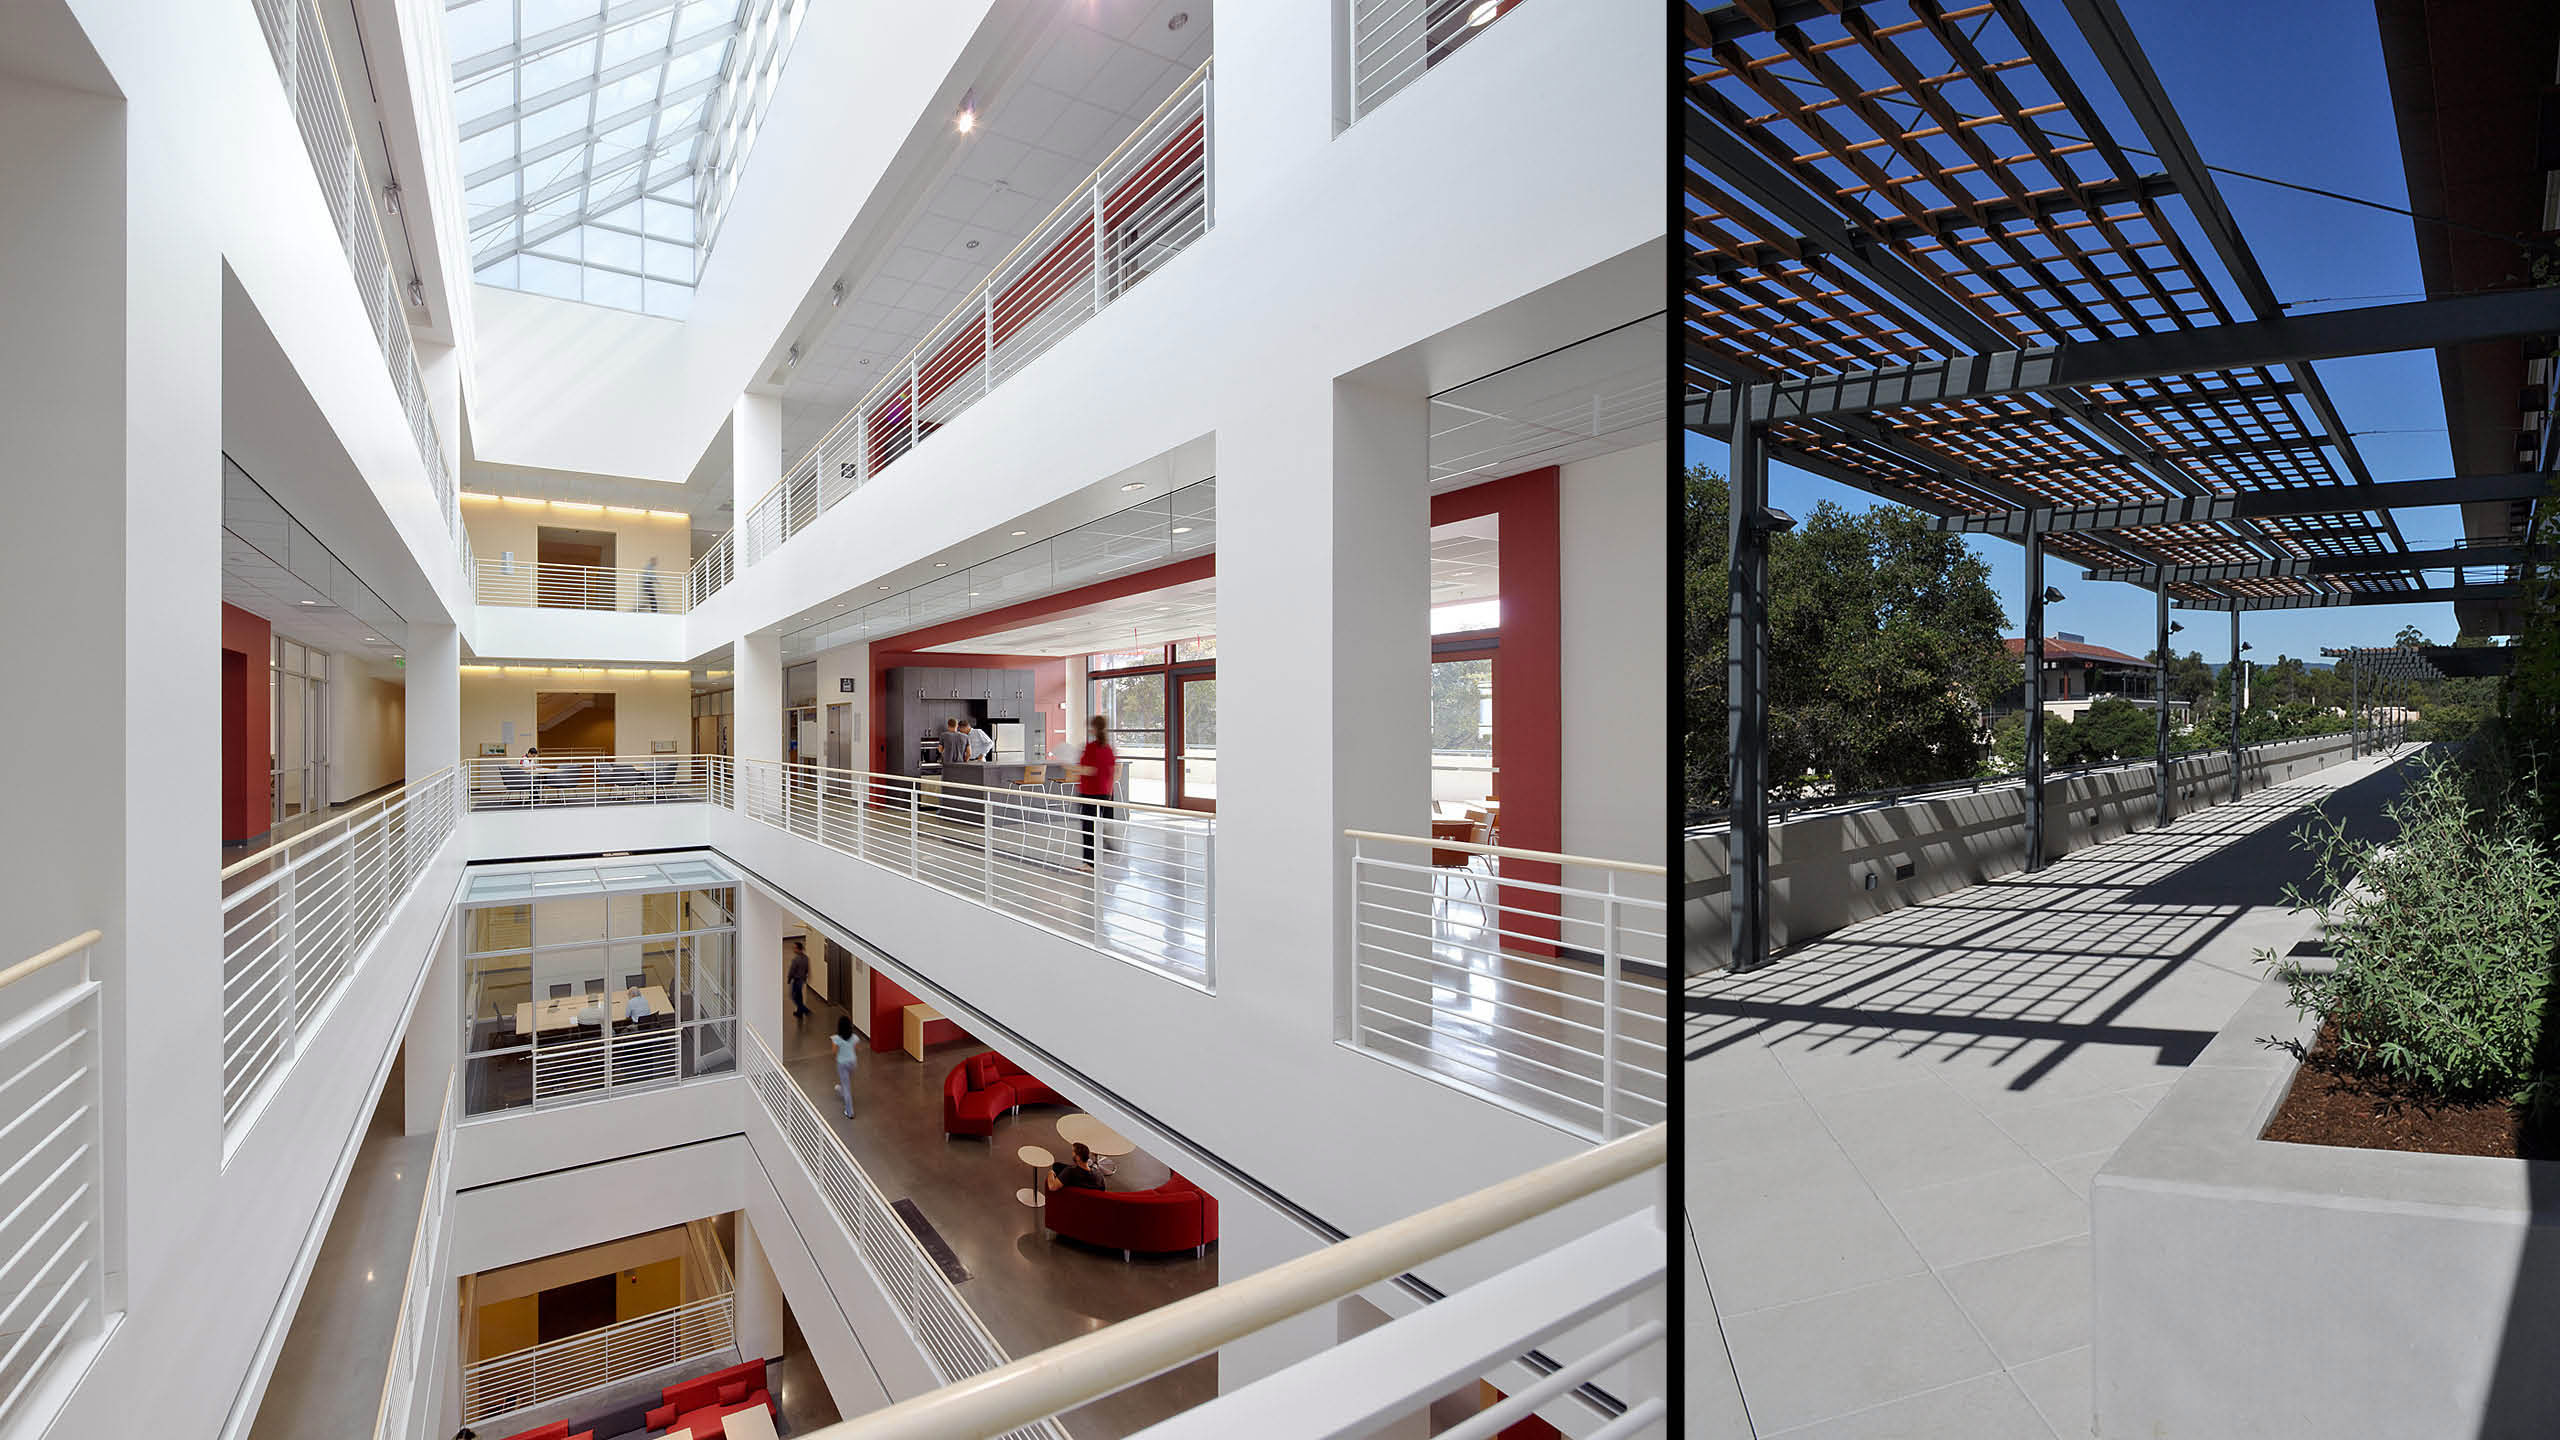 Spilker Engineering and Applied Sciences Building – Stanford University image 4